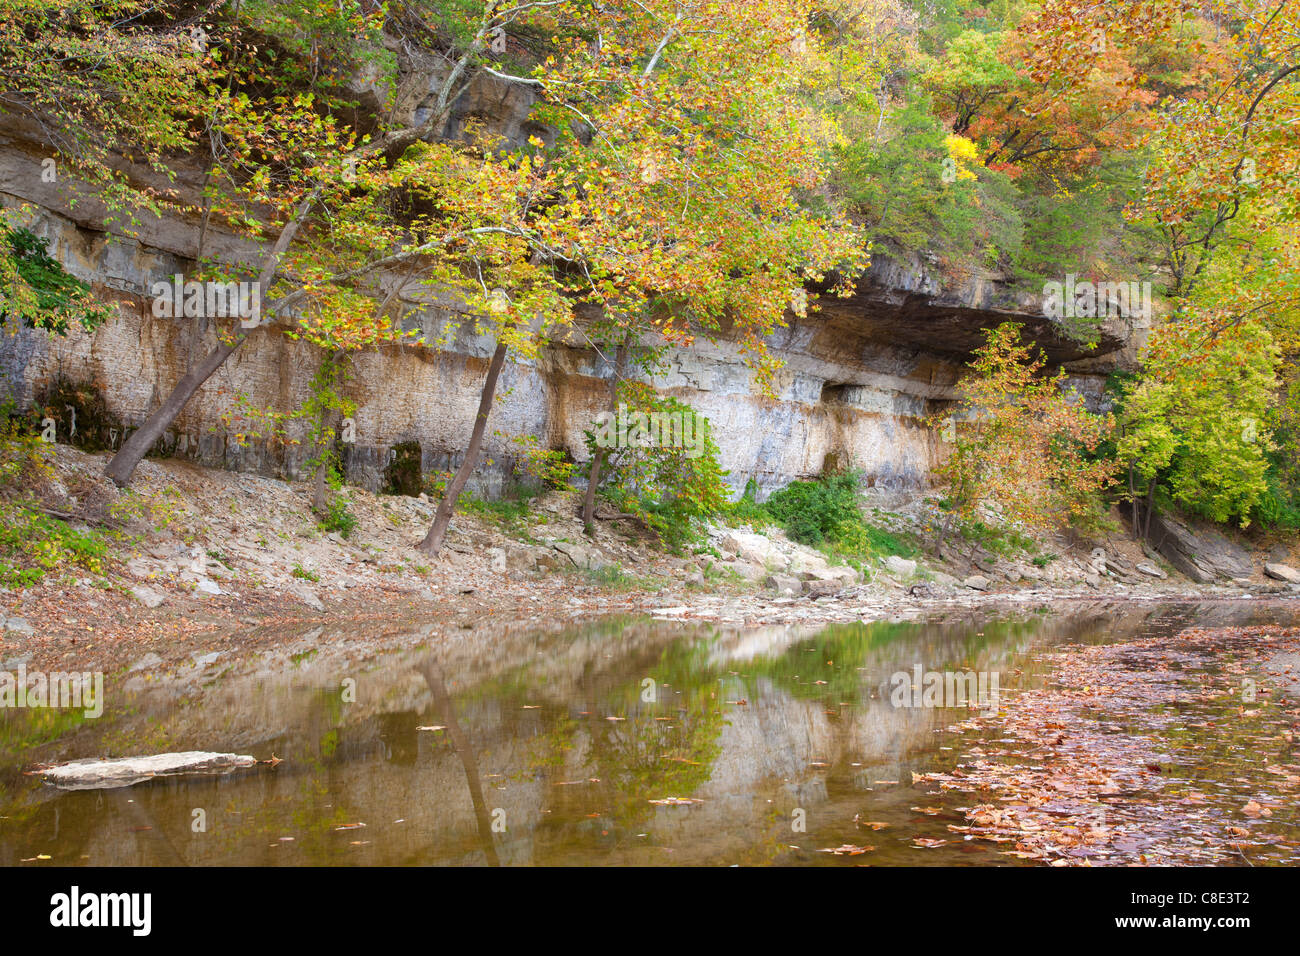 Flint Creek and bluff, Starr's Cave State Preserve, Des Moines County, Iowa - Stock Image